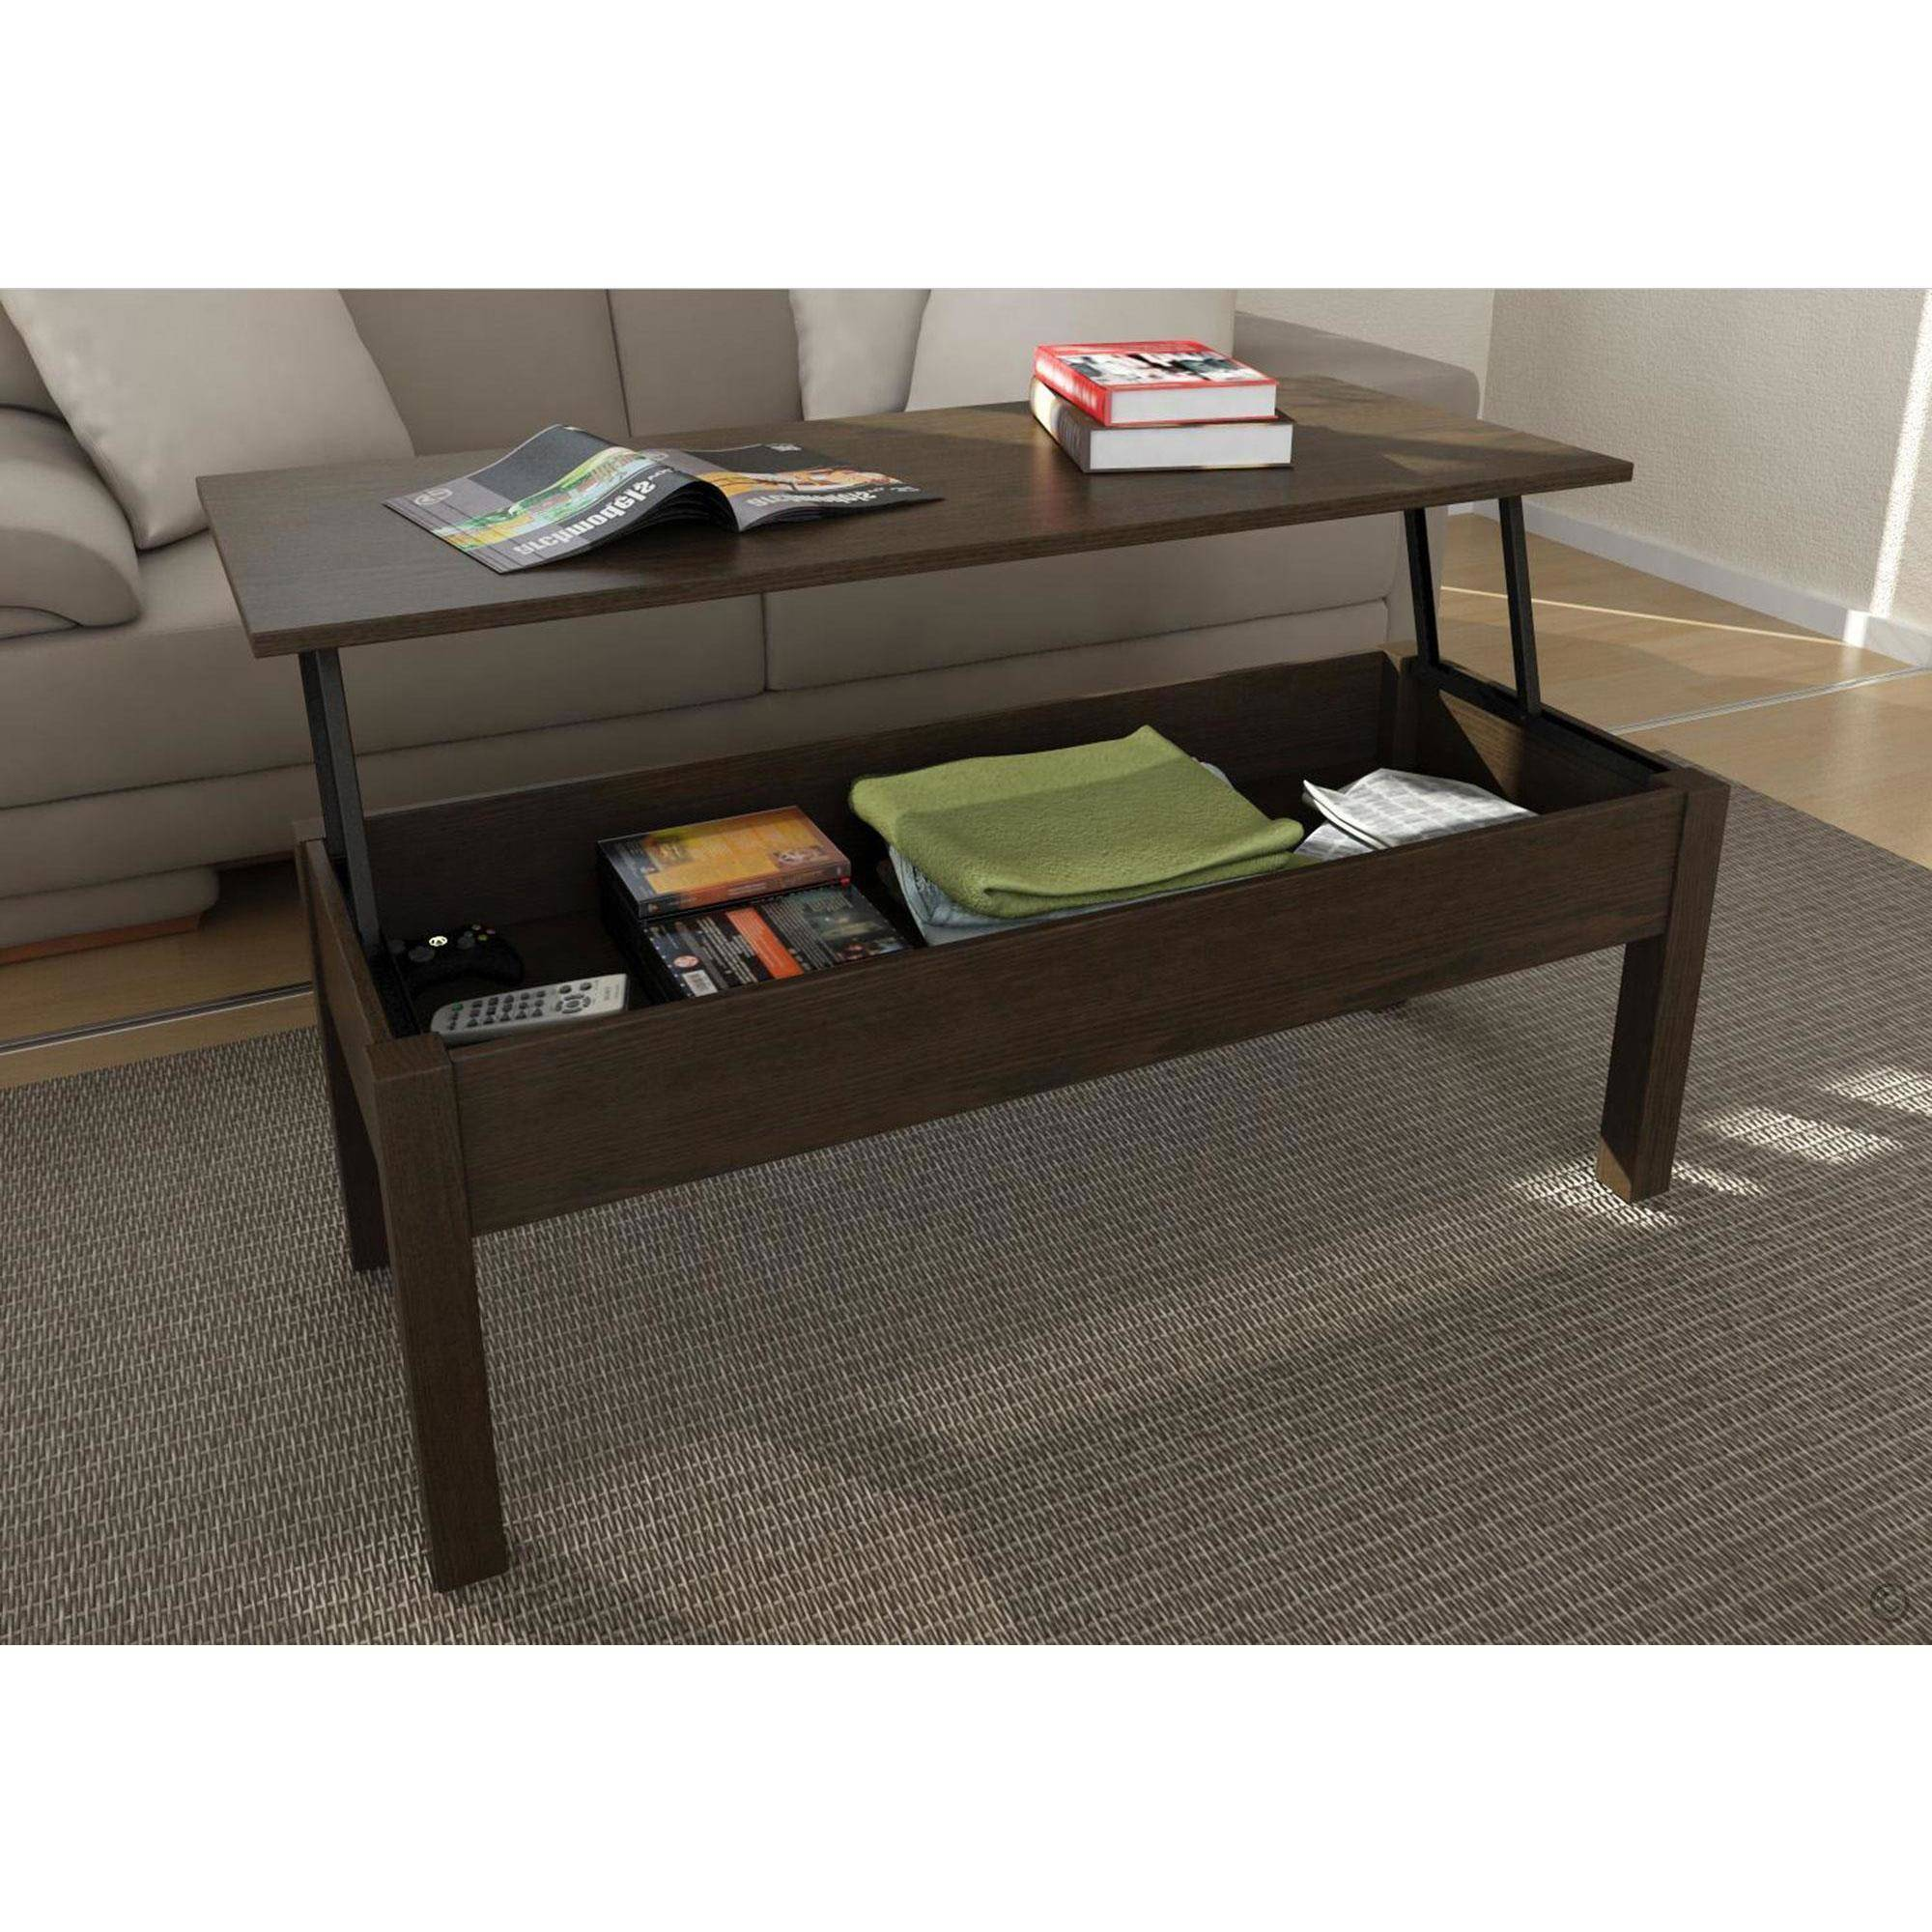 Marvelous Mainstays Lift Top Coffee Table, Multiple Colors Image 1 Of 8